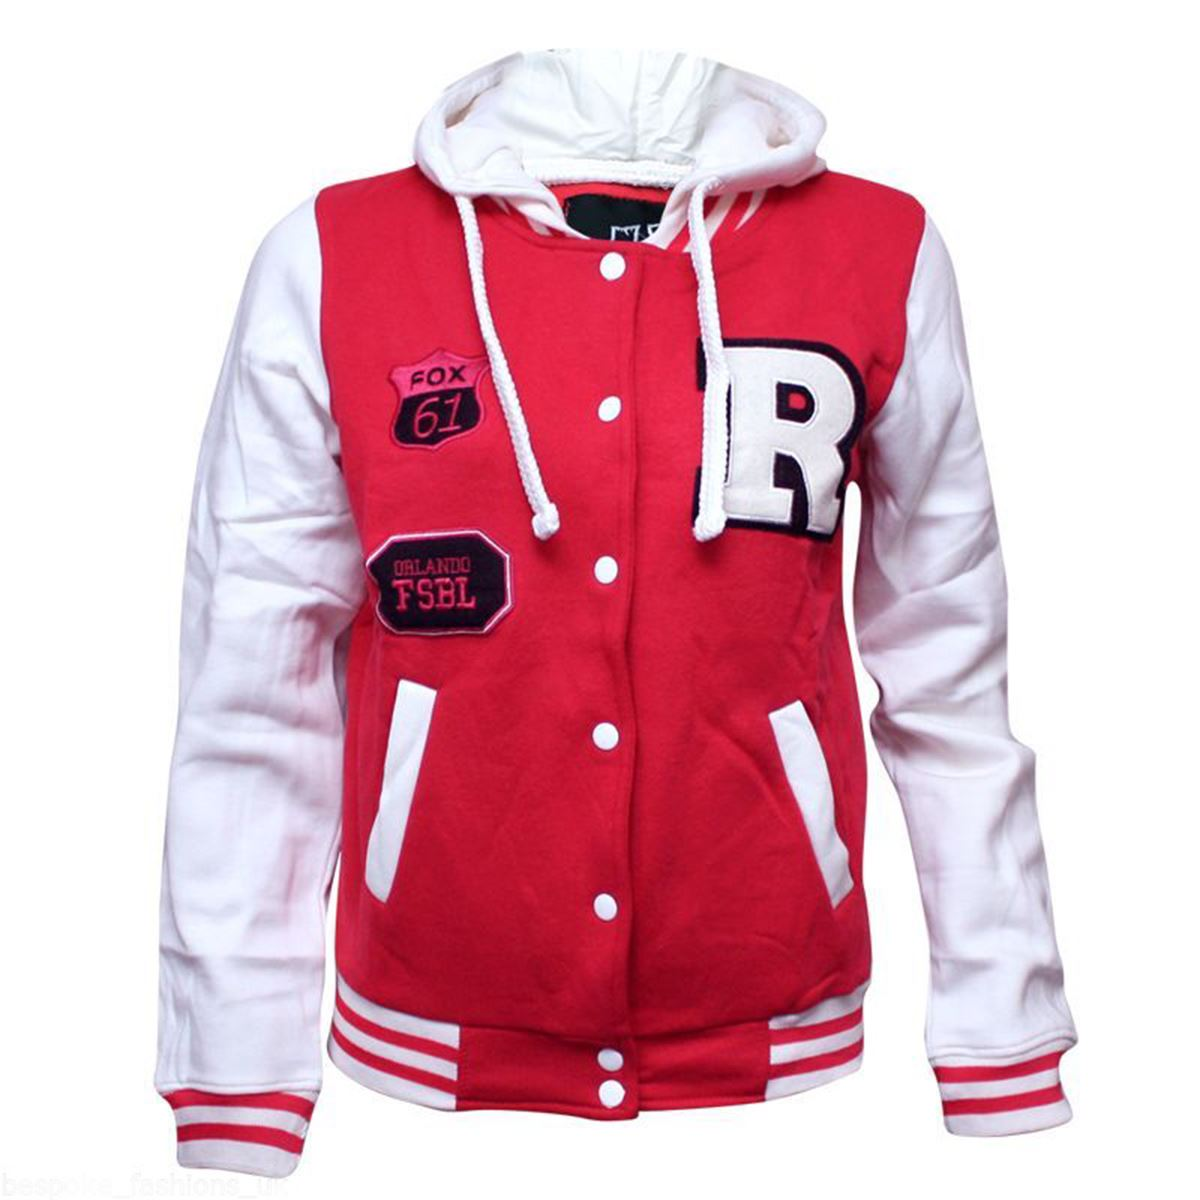 a2z4kids Kids Girls Boys Baseball Jacket Varsity Style Plain School Jackets Top Year. by a2z4kids. $ - $ $ 15 $ 18 FREE Shipping on eligible orders. out of 5 stars Product Features Kids Unisex Baseball Varsity Stylish Fashion Jacket. Harry Potter Slytherin Juniors Varsity Jacket.